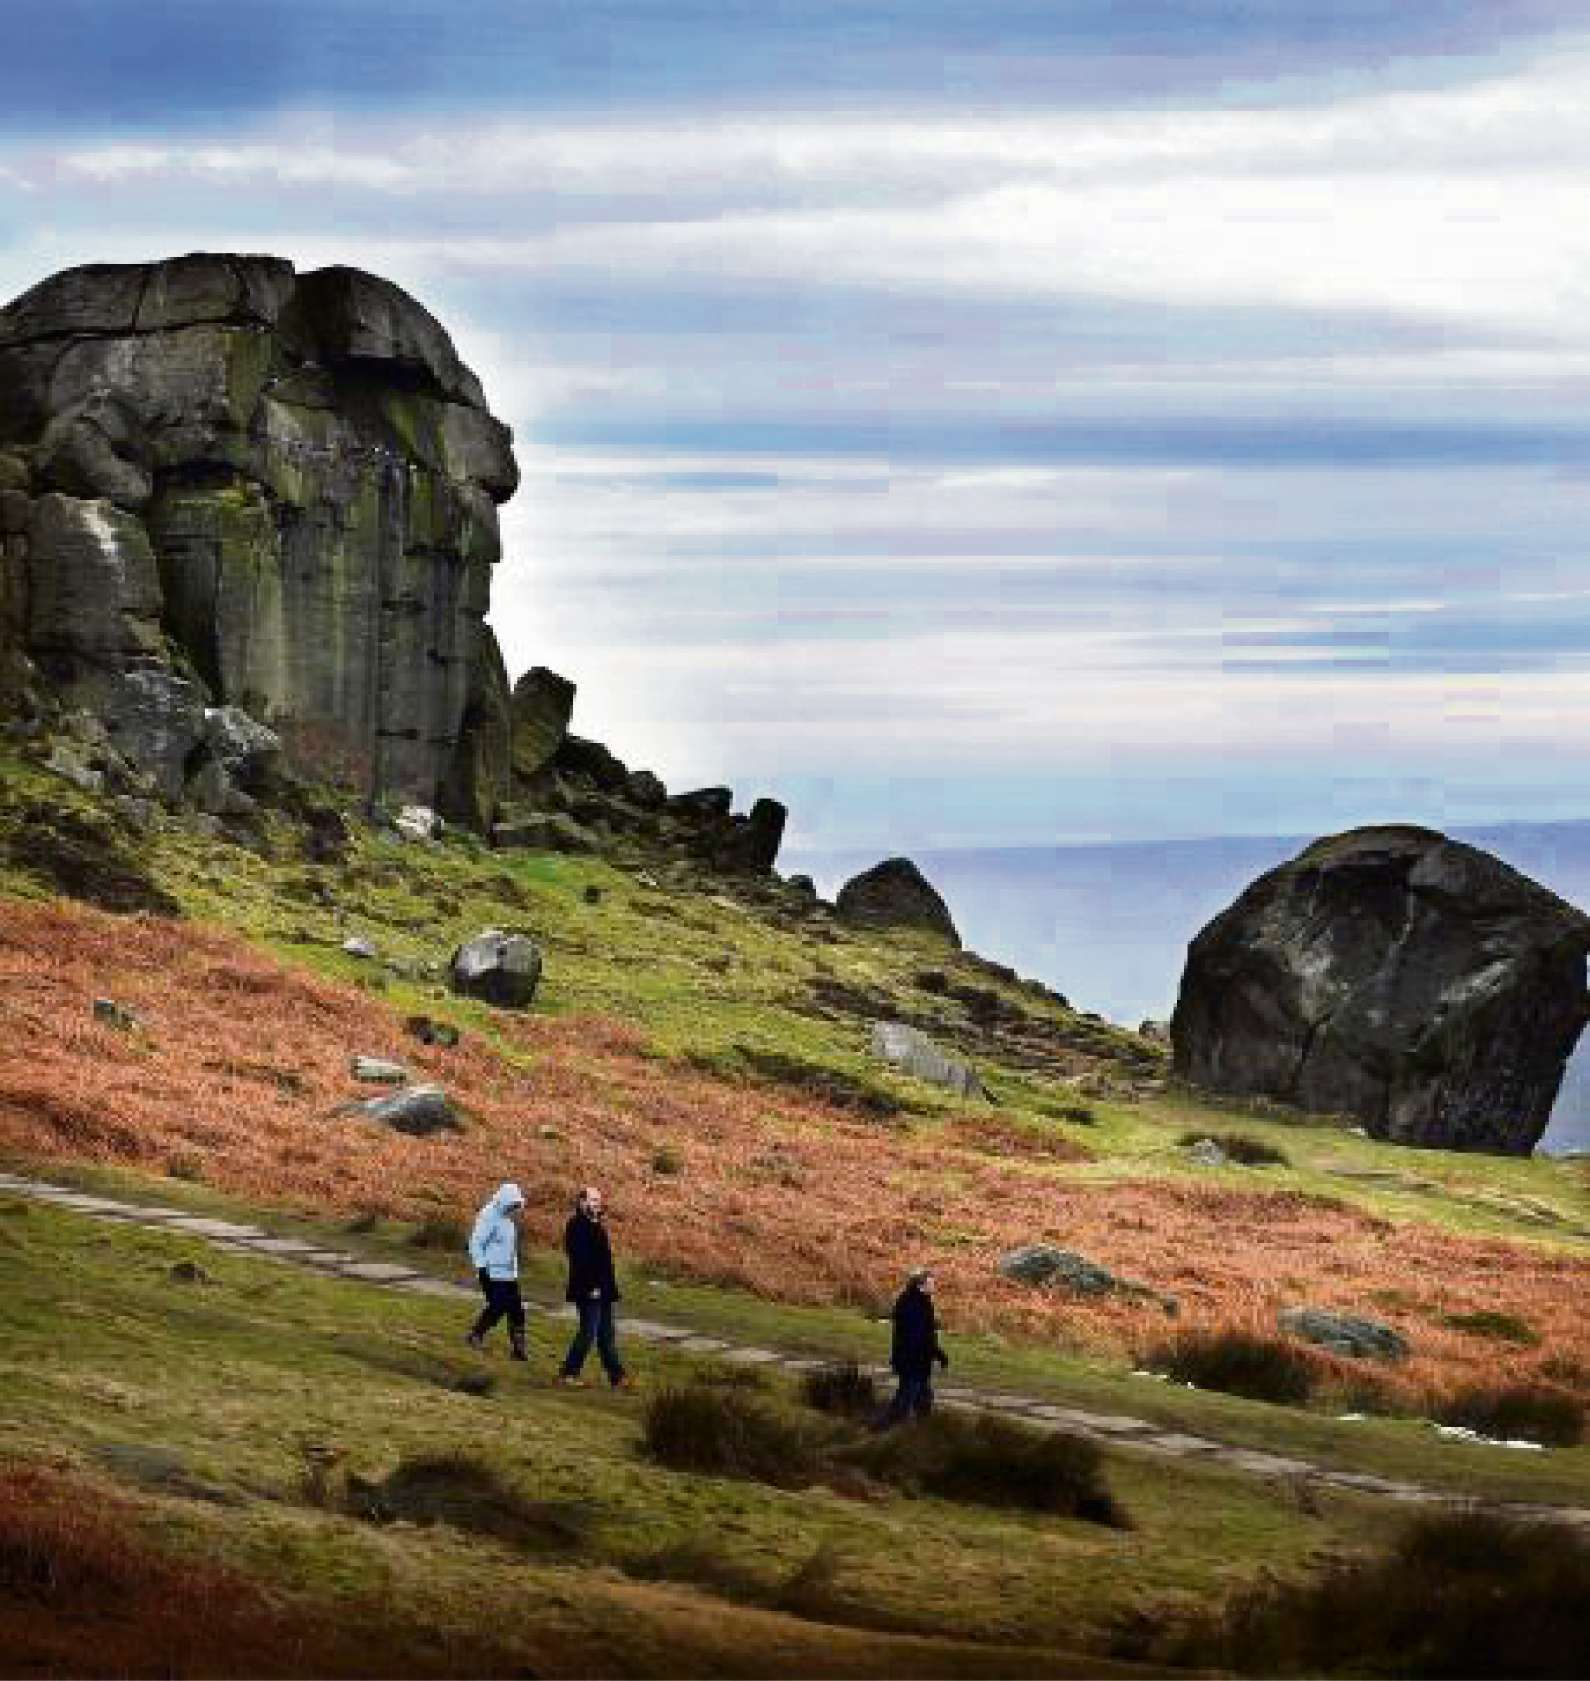 The Cow and Calf Rocks at Ilkley which are a magnet for tourists